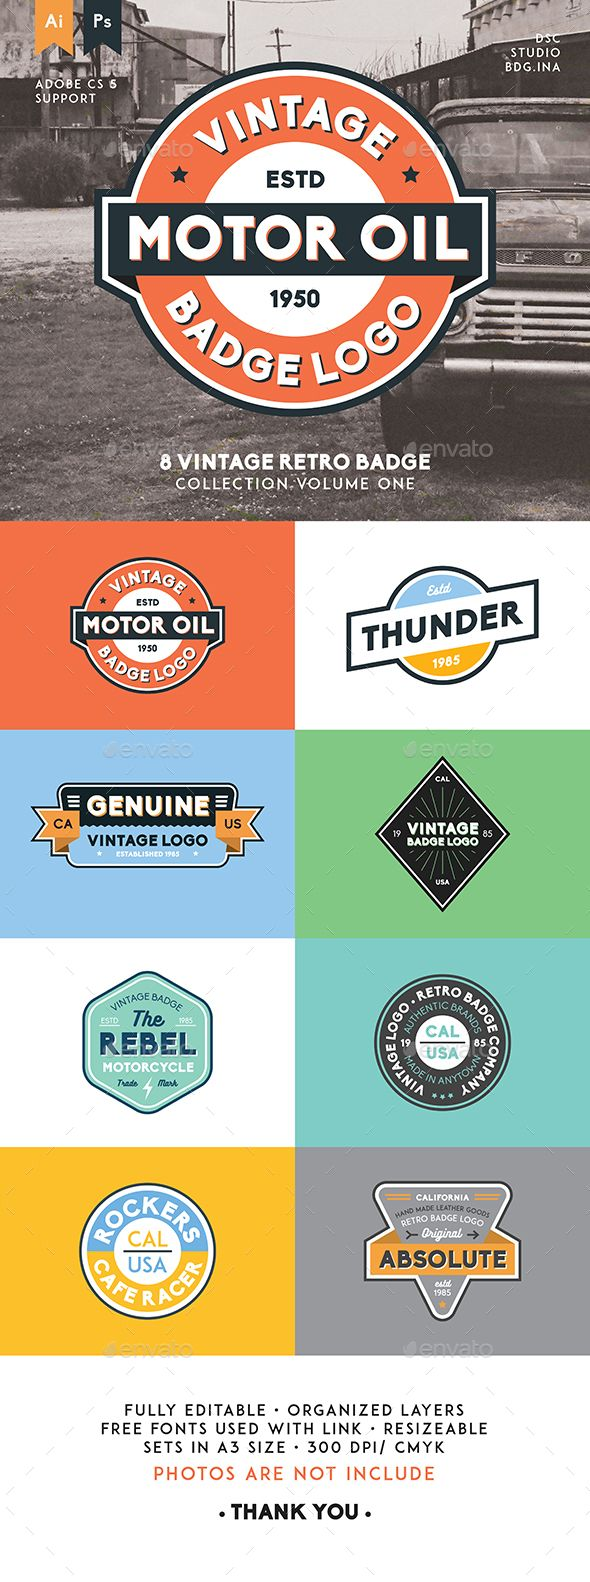 8 Vintage Retro Badge Template PSD, Vector AI. Download here: http://graphicriver.net/item/8-vintage-retro-badge/15829348?ref=ksioks